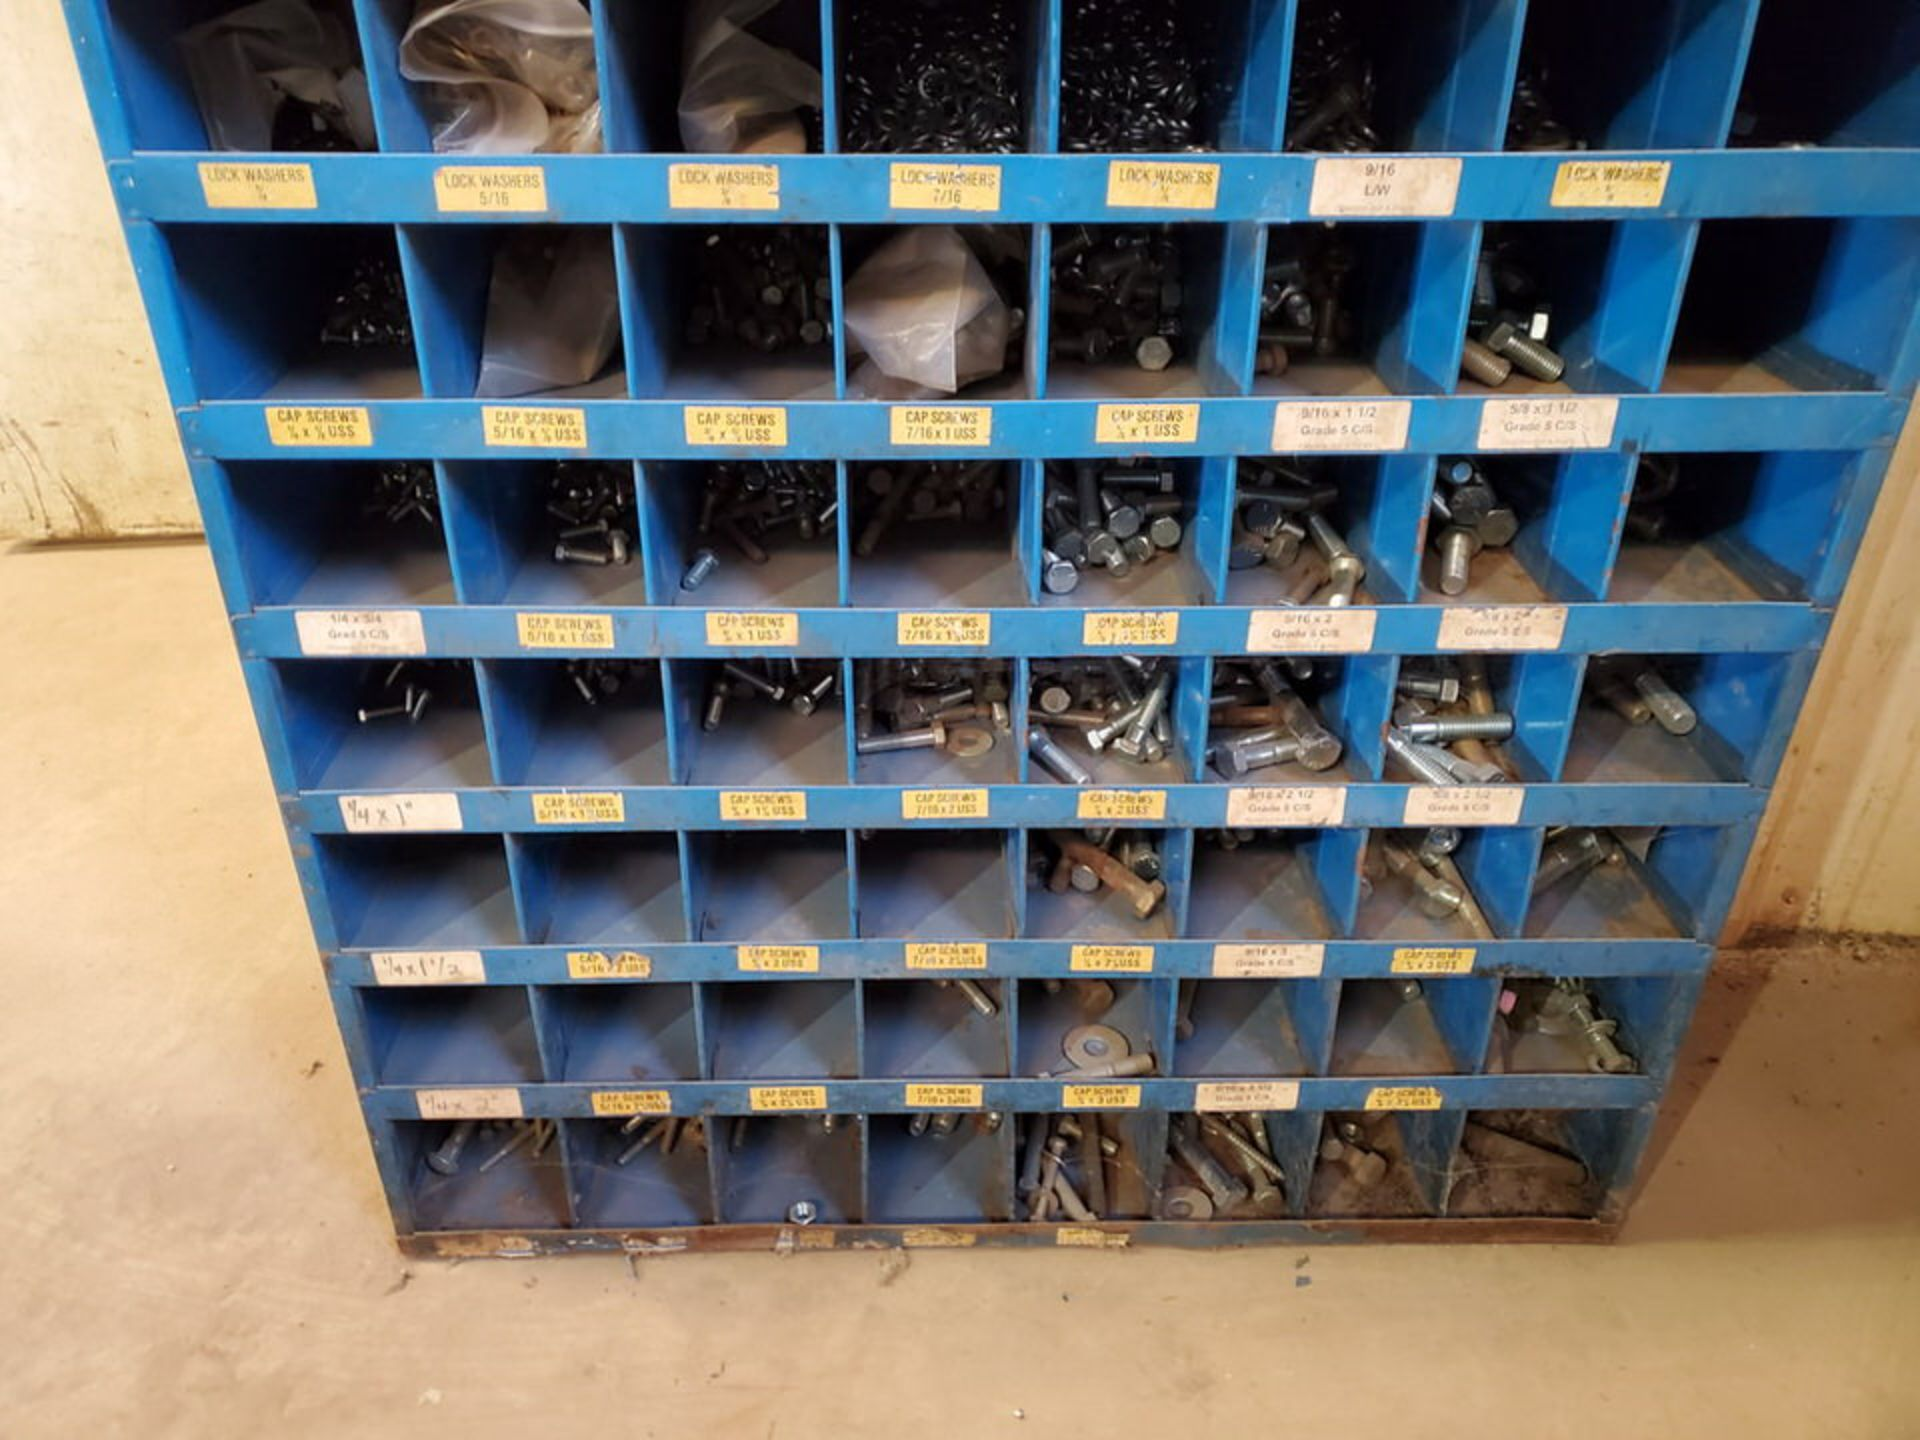 """(2) Parts Bins To Include But Not Limited To: Nuts, Bolts, Washers, etc. Size Range: 1/4""""-4"""" - Image 5 of 15"""